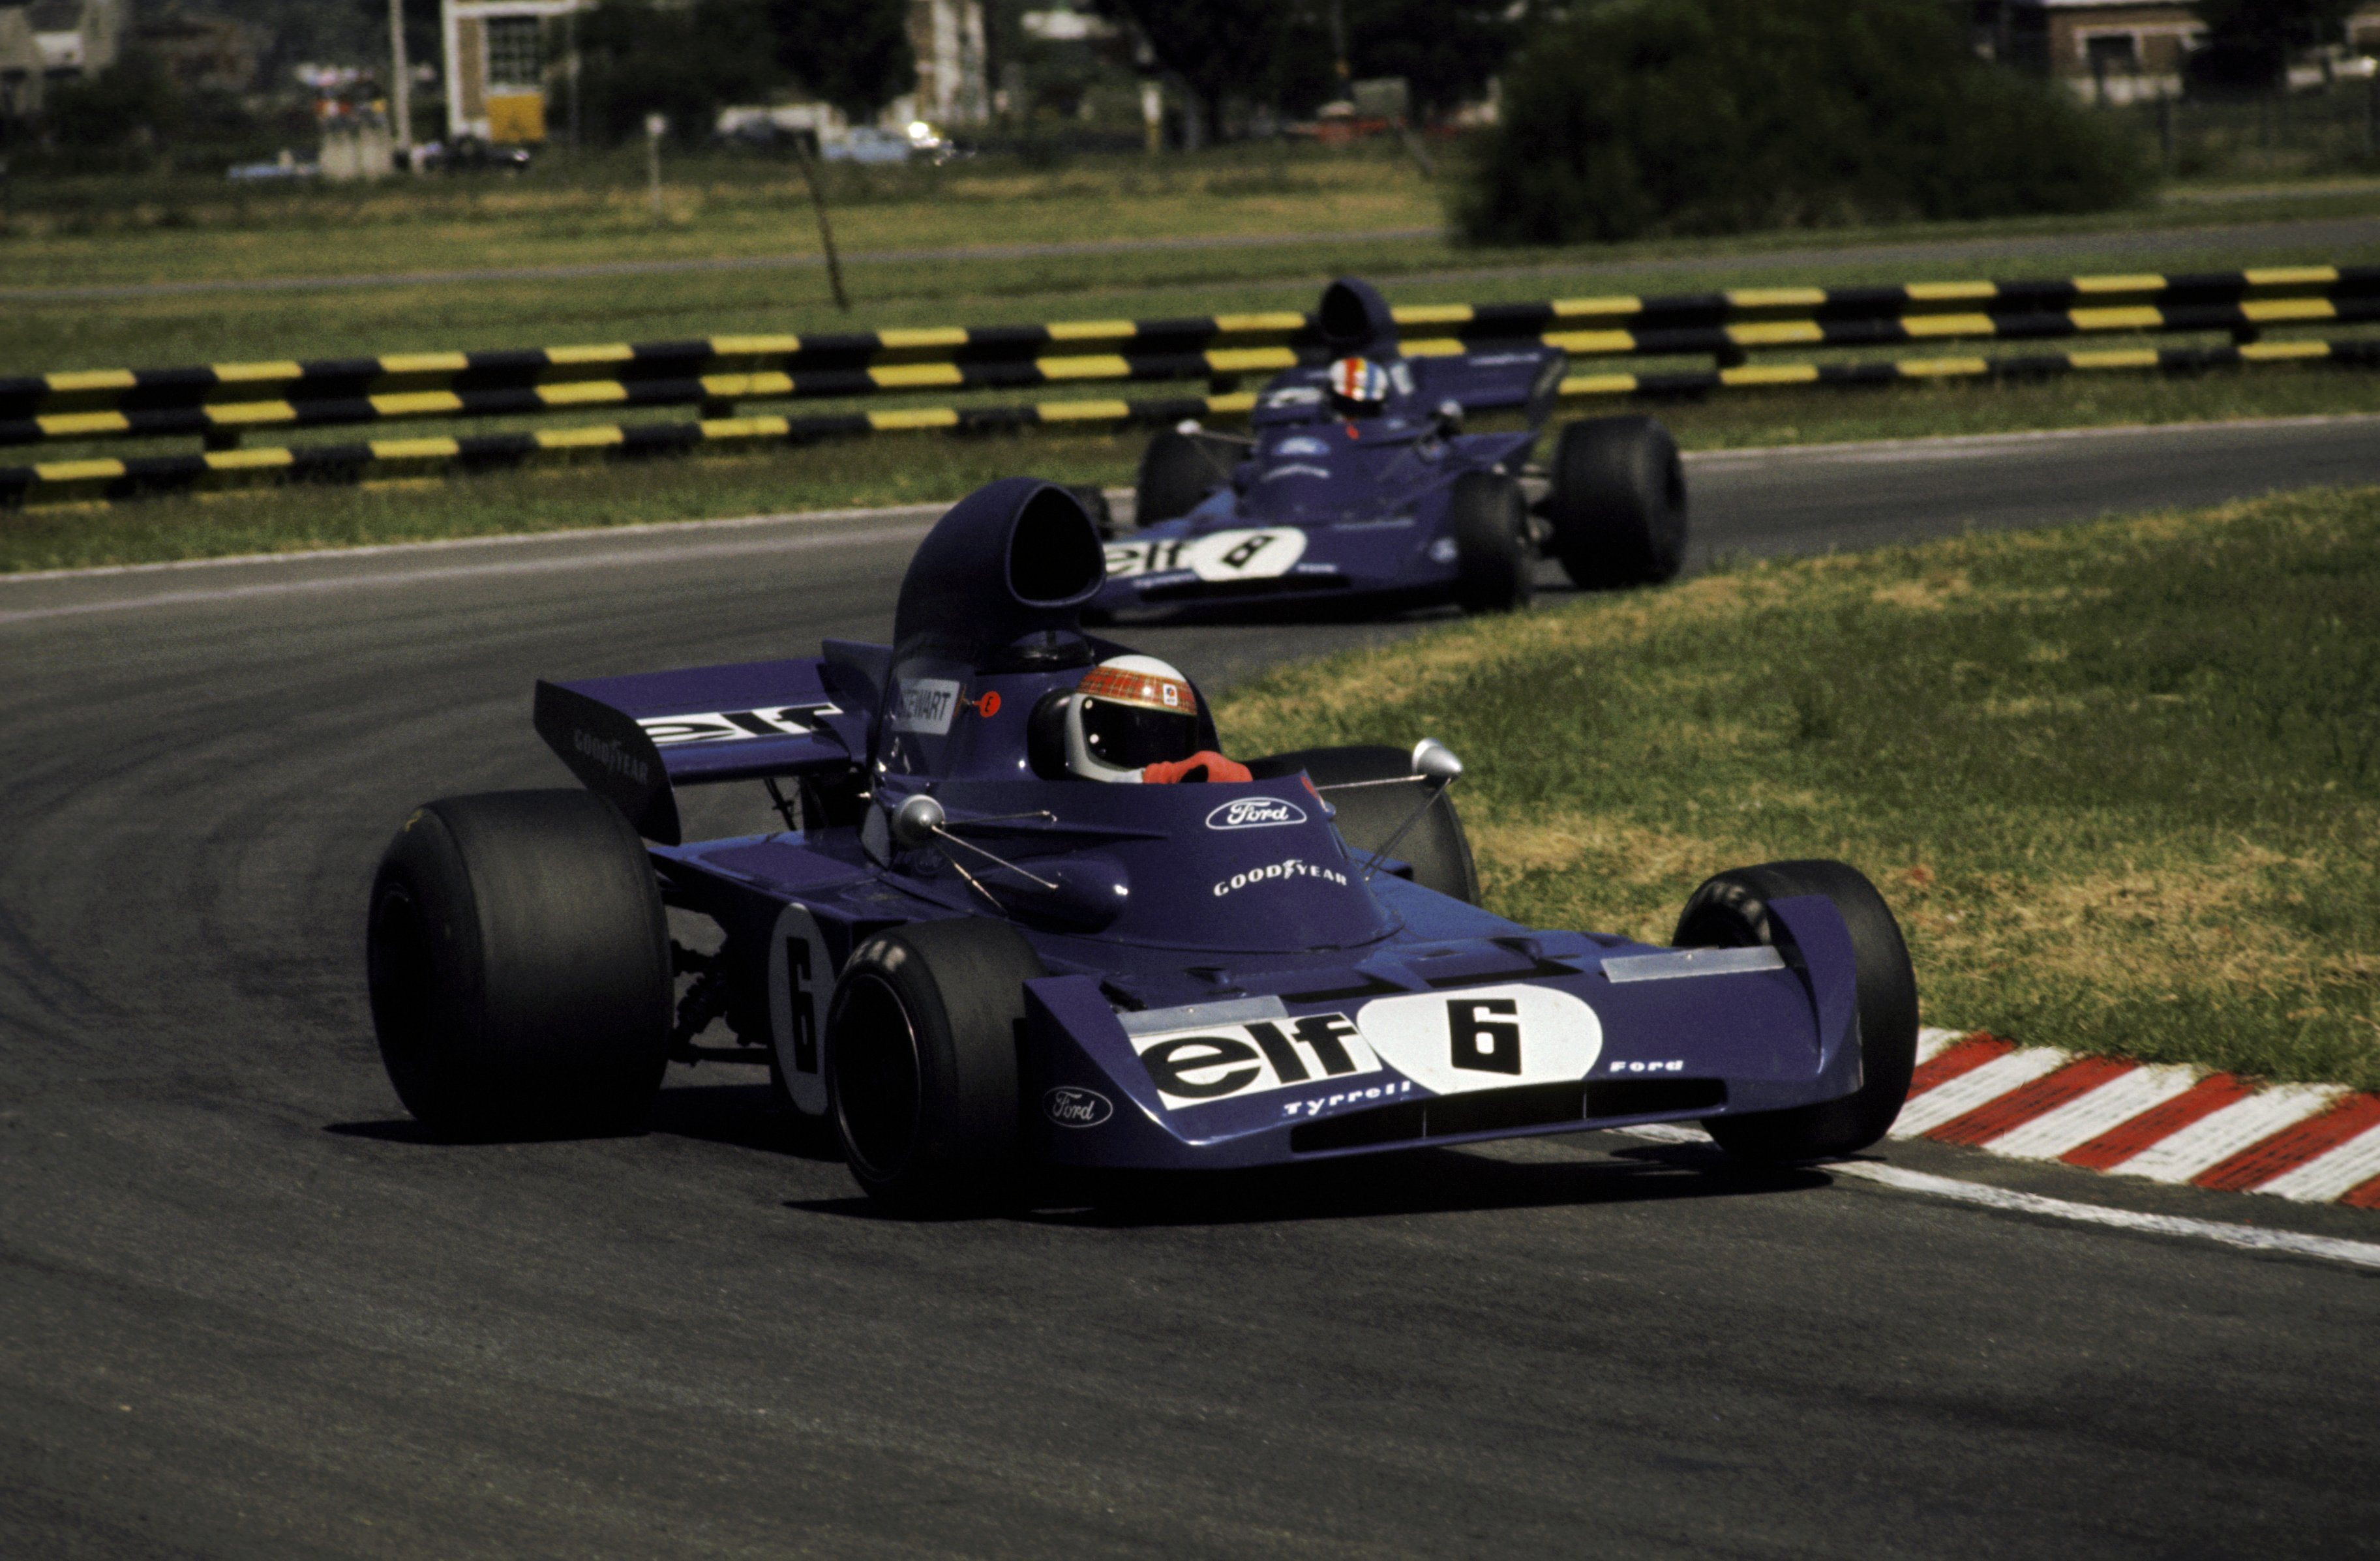 buenos aires jackie Stewart HD Wallpaper